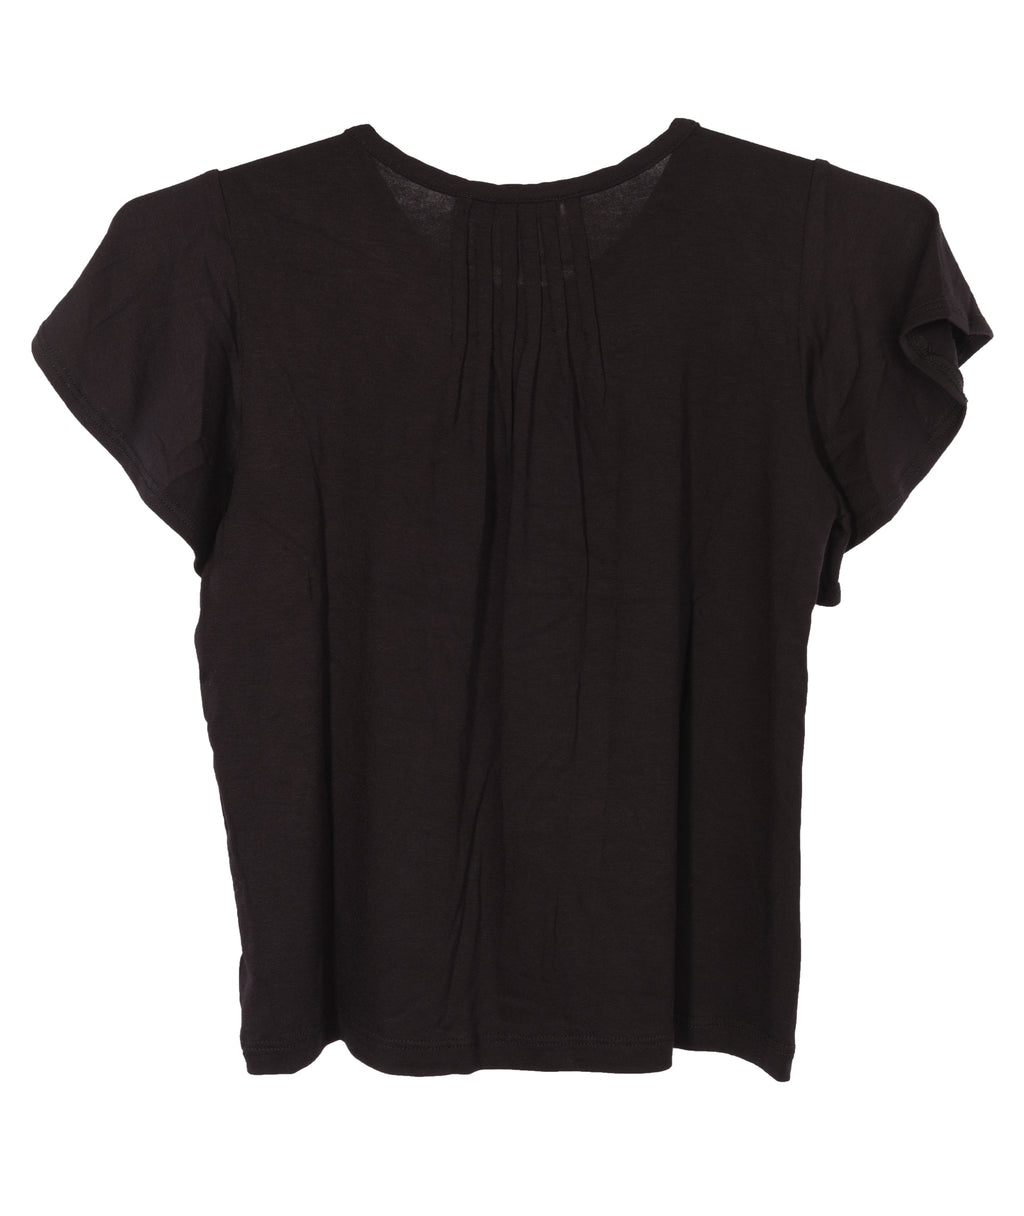 Me.n.u. Girls Black Pintuck Tee